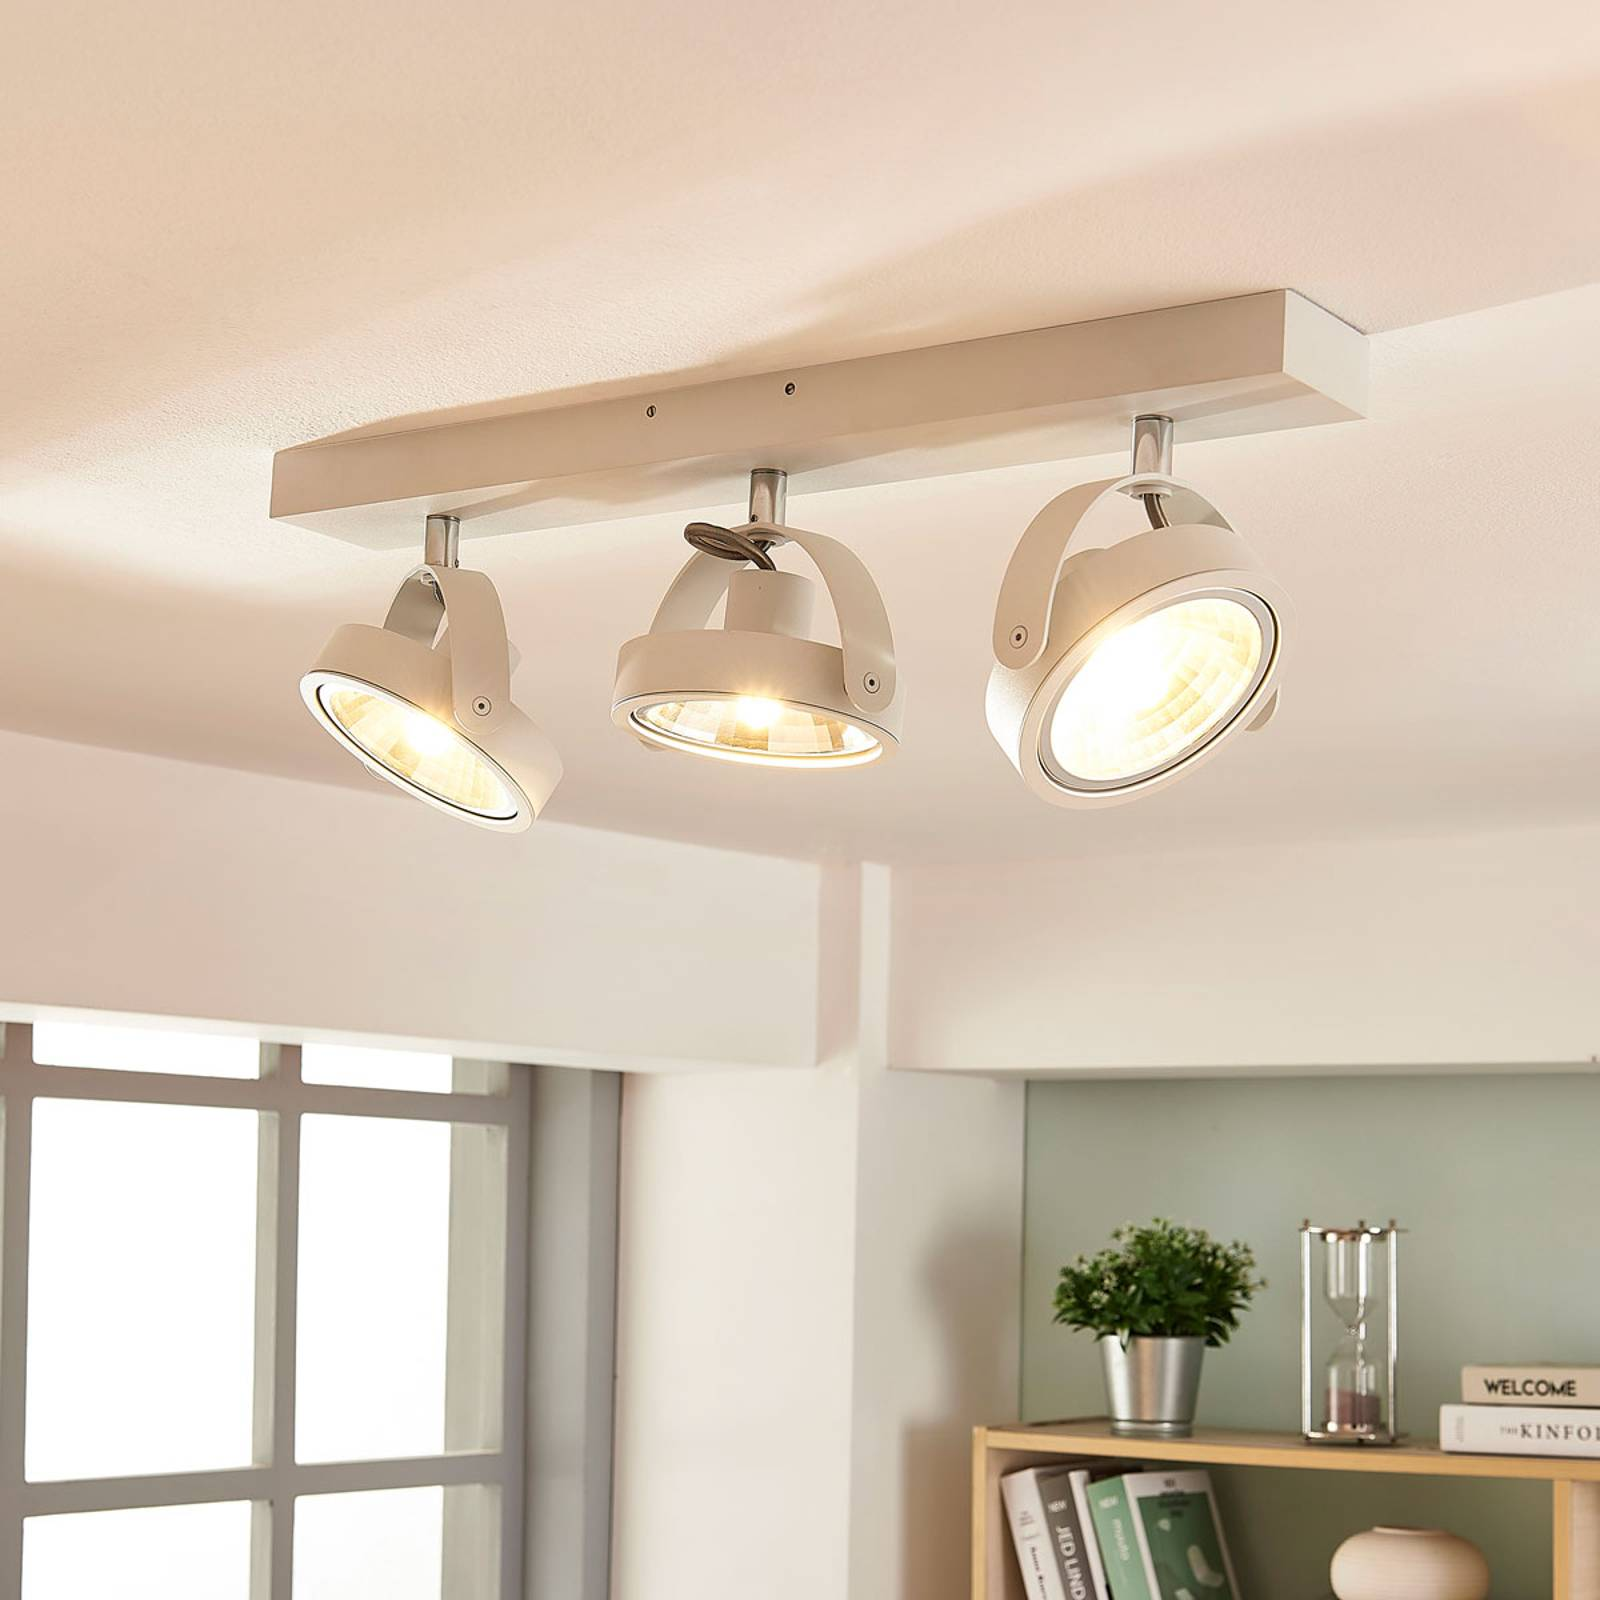 Moderne LED plafondlamp Lieven in wit